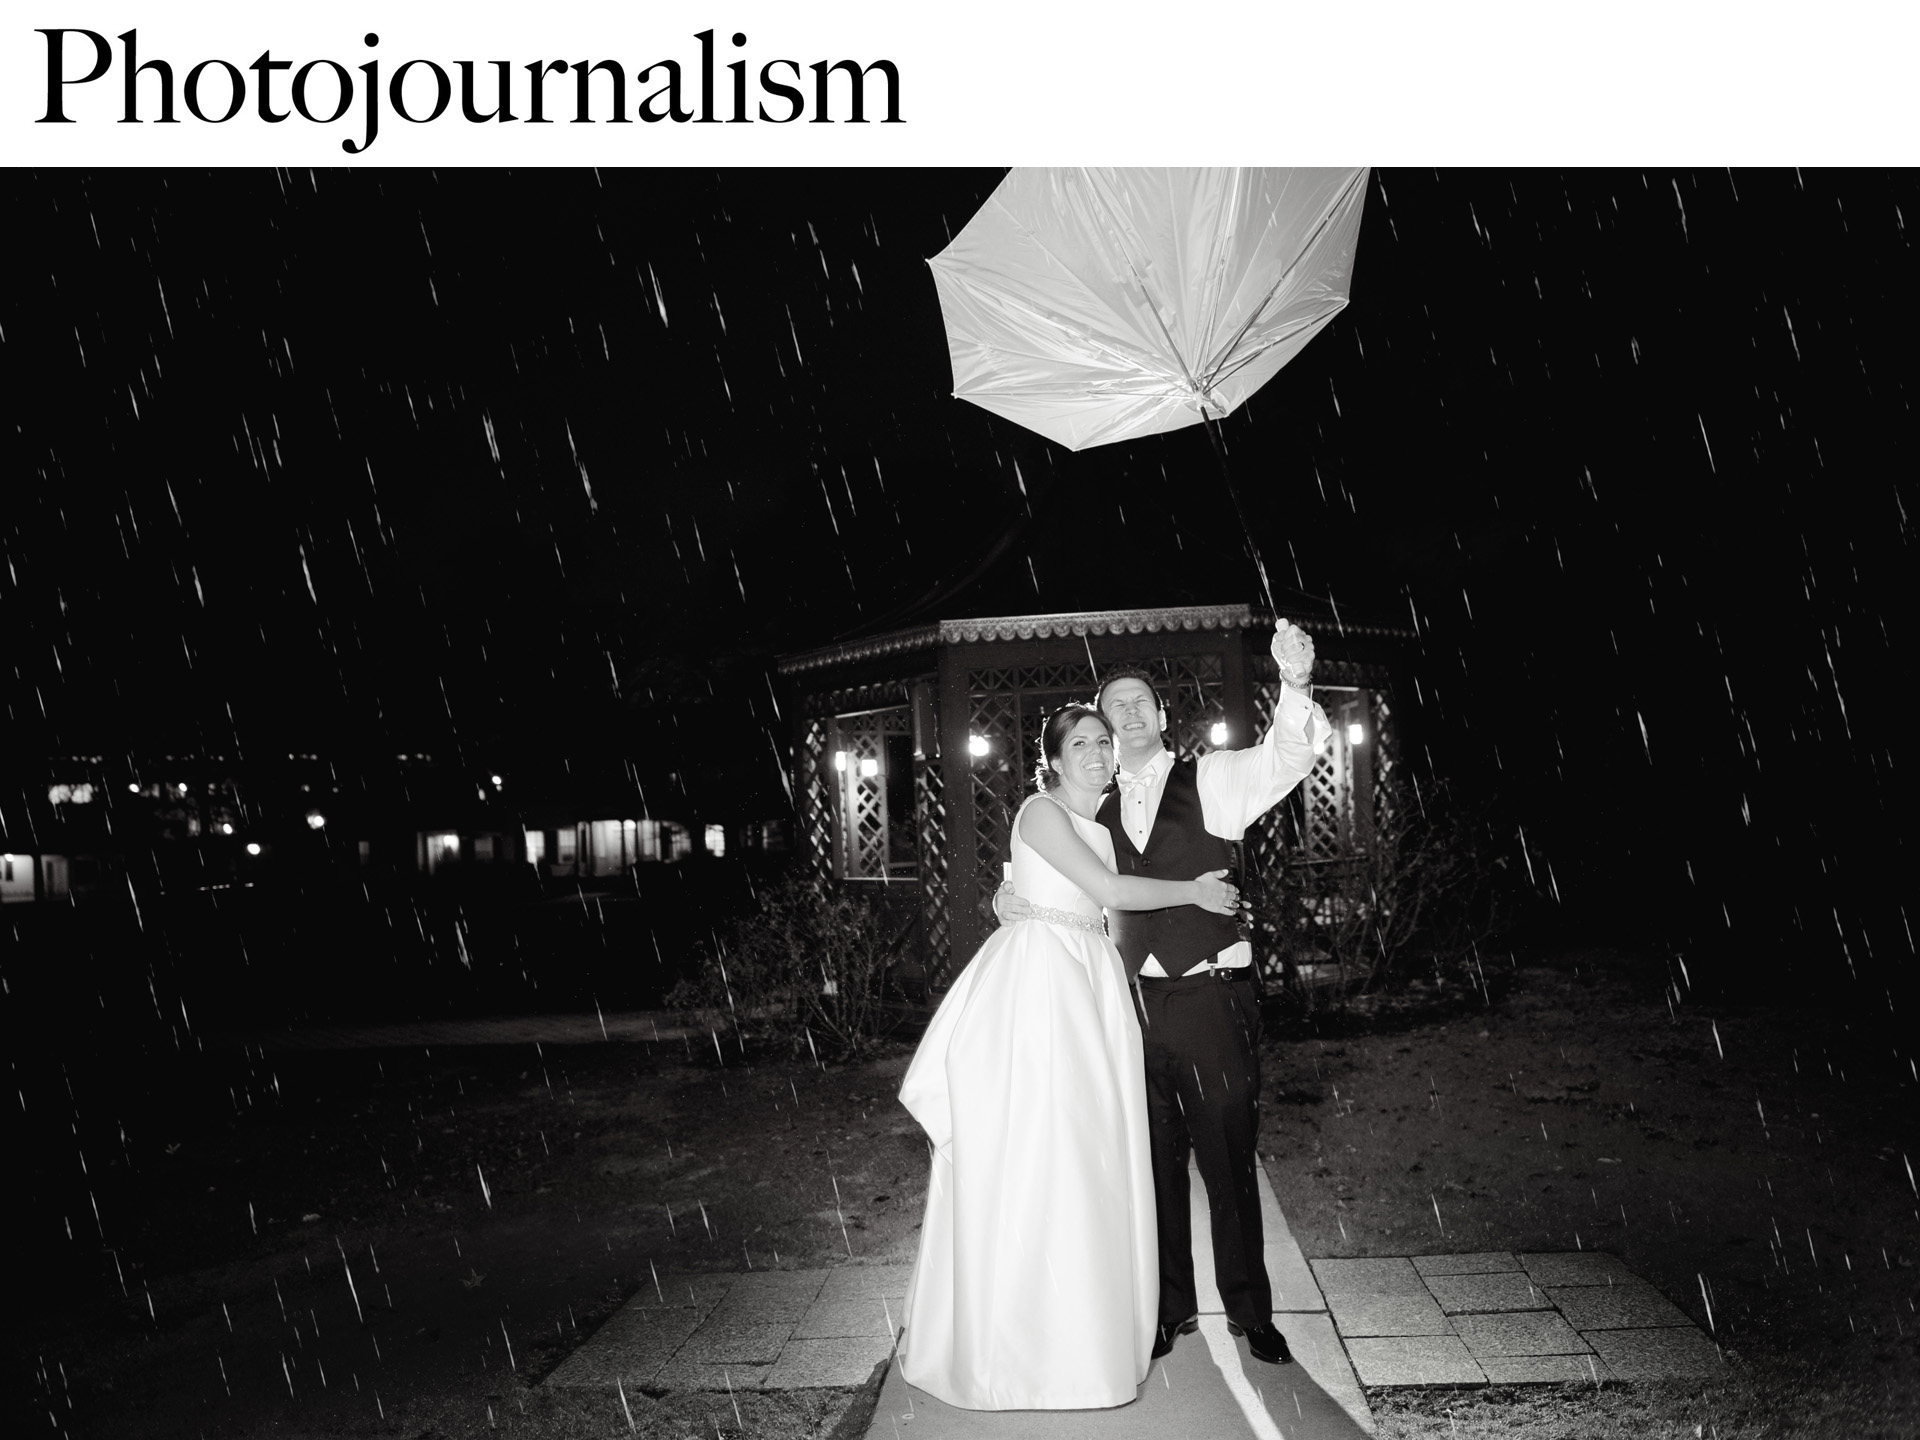 The bride and groom struggle during the rain after their Dearborn Inn wedding in Dearborn, Michigan.